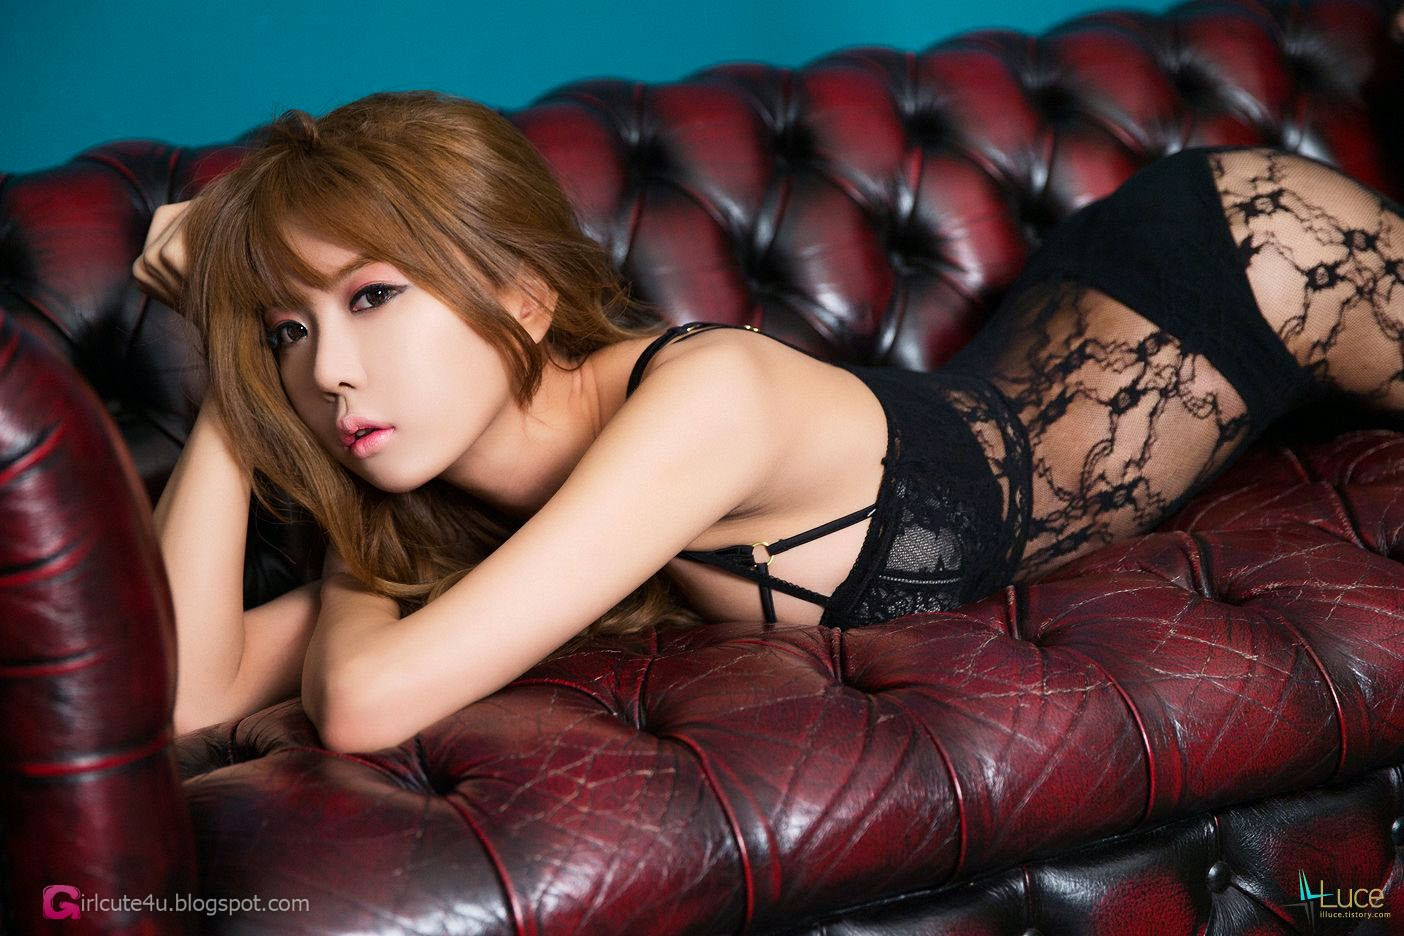 1 Heo Yoon Mi  - very cute asian girl-girlcute4u.blogspot.com